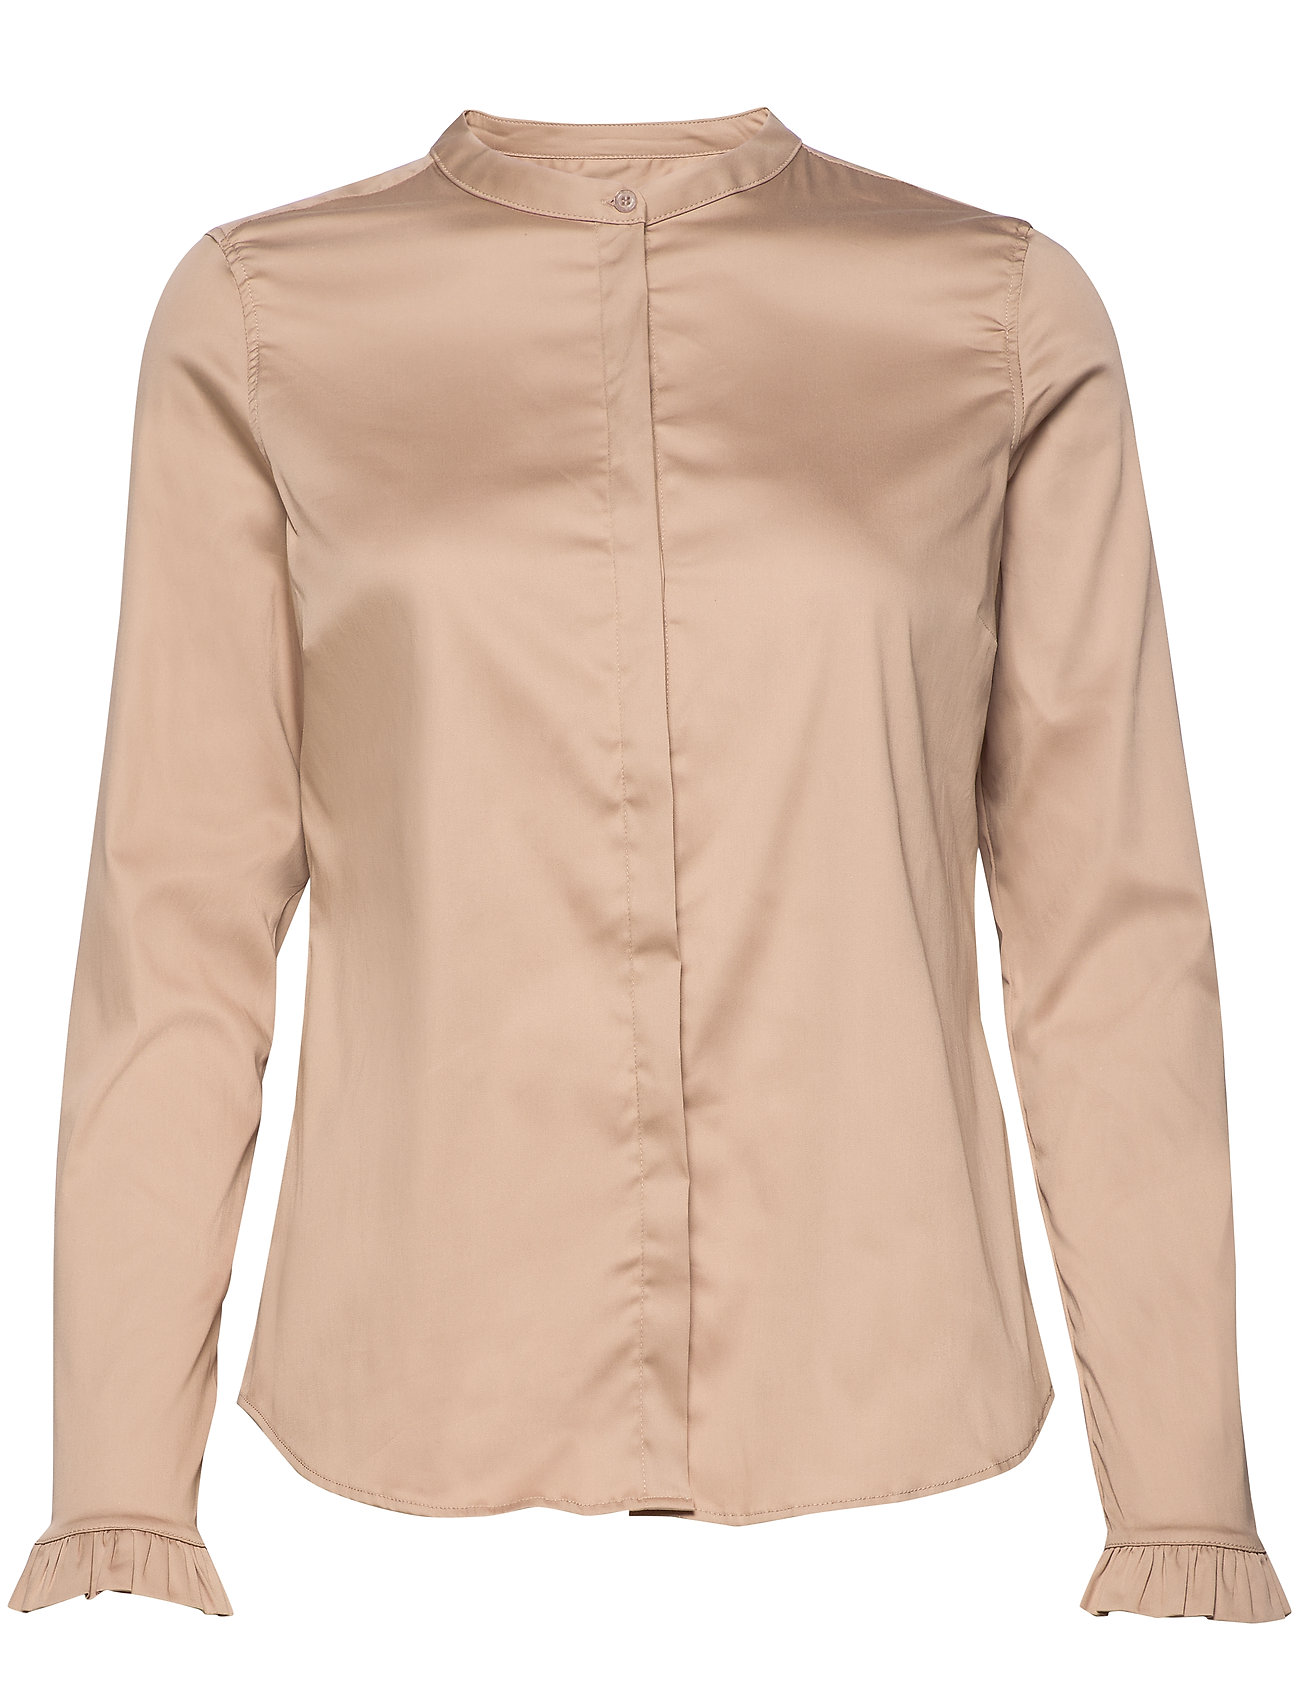 Image of Mattie Sustainable Shirt Langærmet Skjorte Beige MOS MOSH (3427734413)